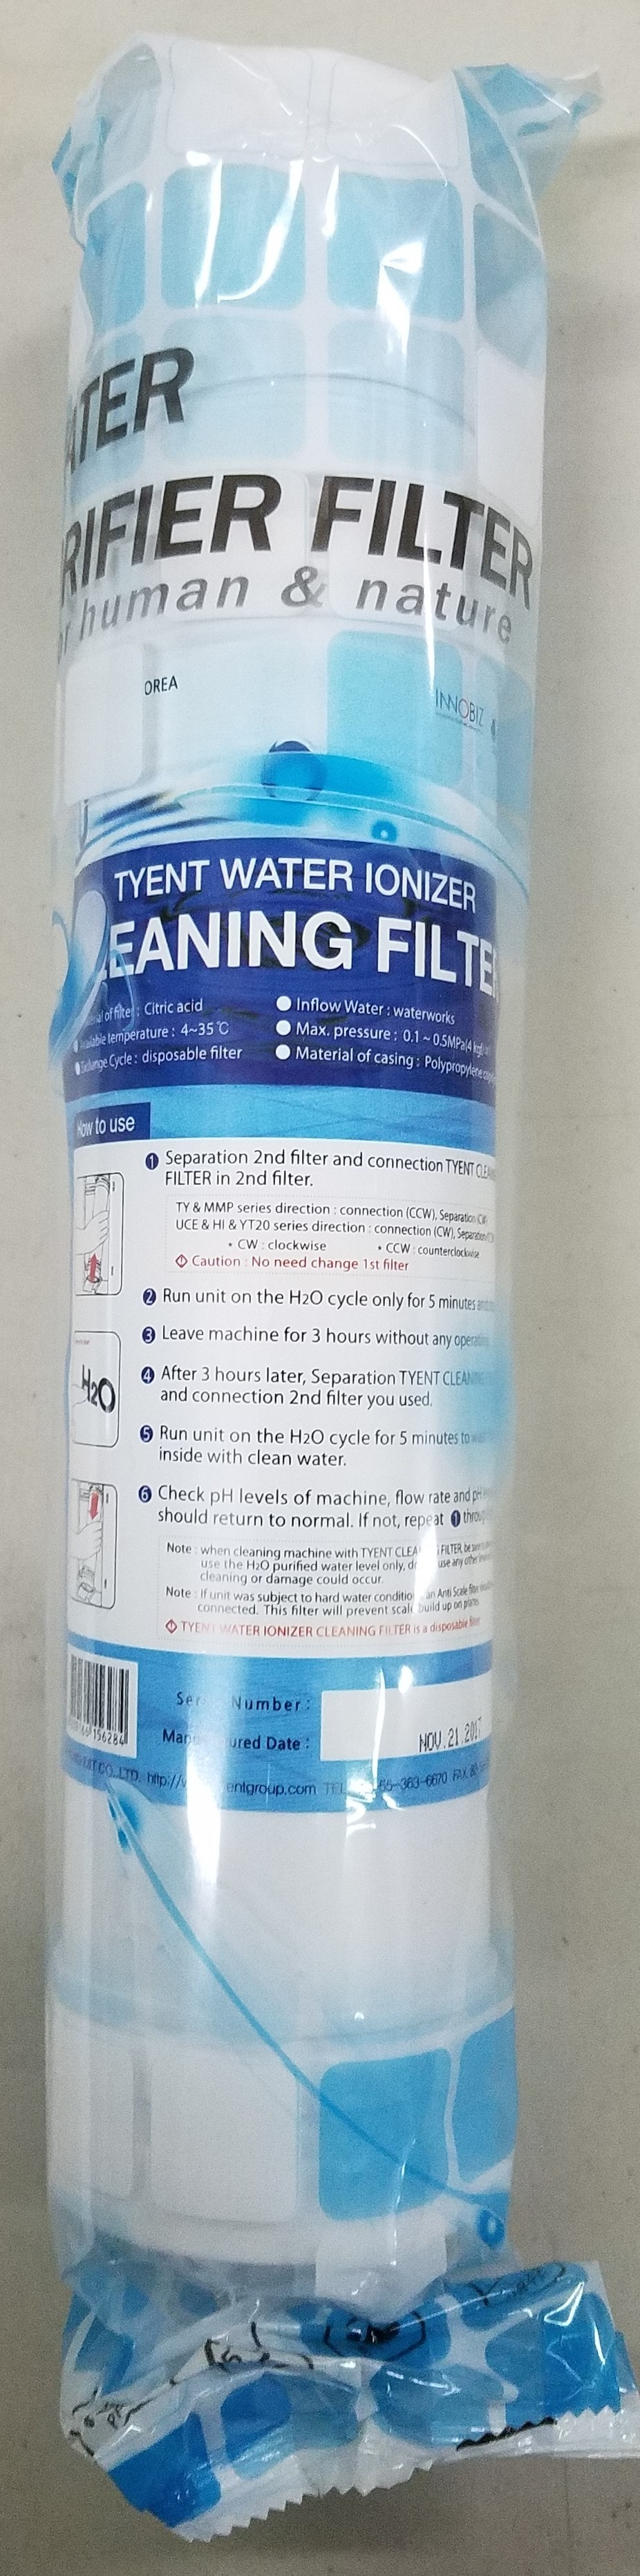 ACE Series Ionizer Cleaning Filter